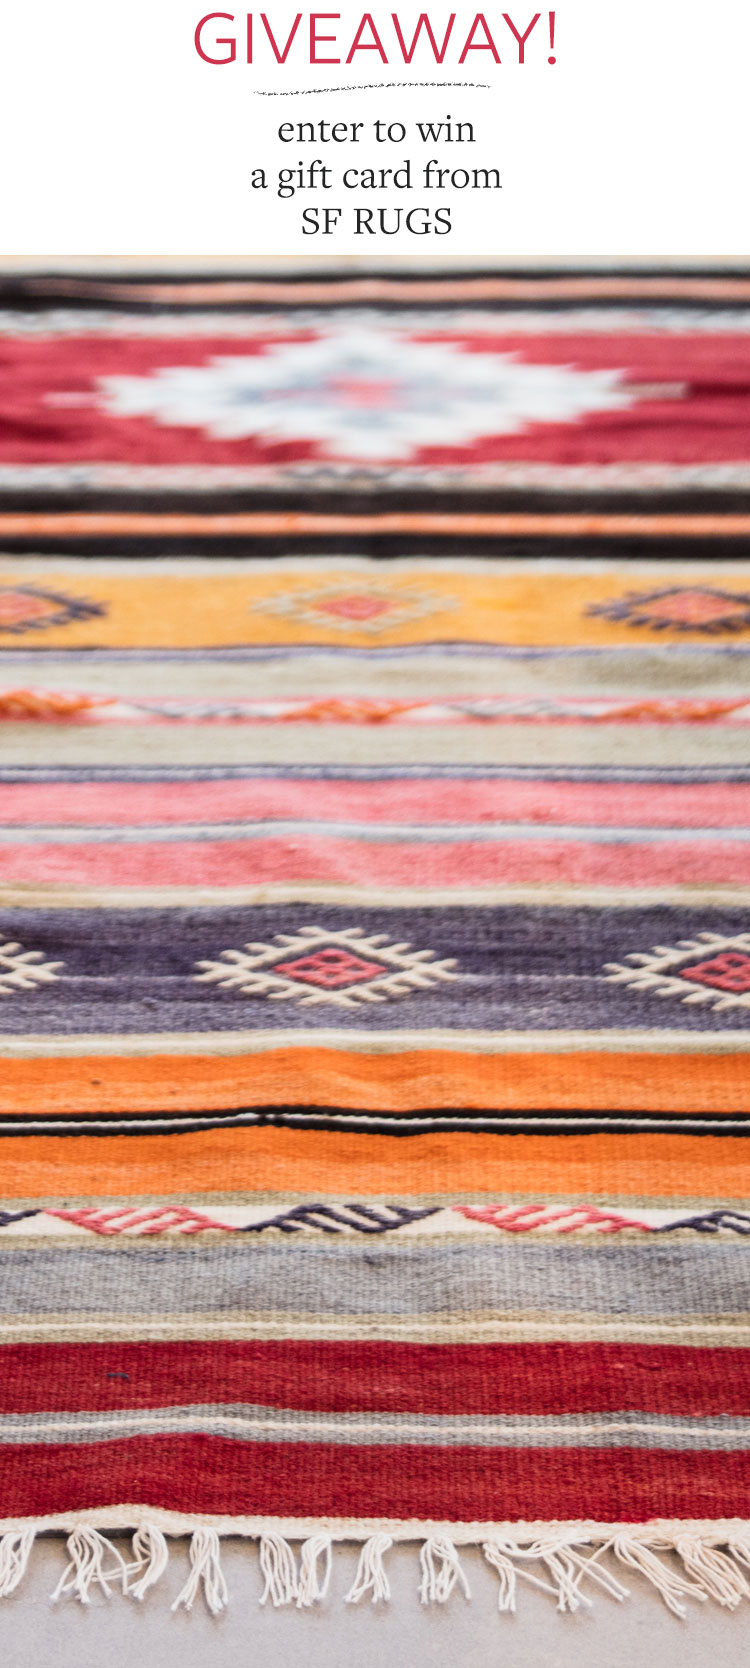 Meet SF Rugs, my new favorite source for antique and vintage rugs, plus enter to wine a giveaway to win! More boho interior decor inspiration on jojotastic.com